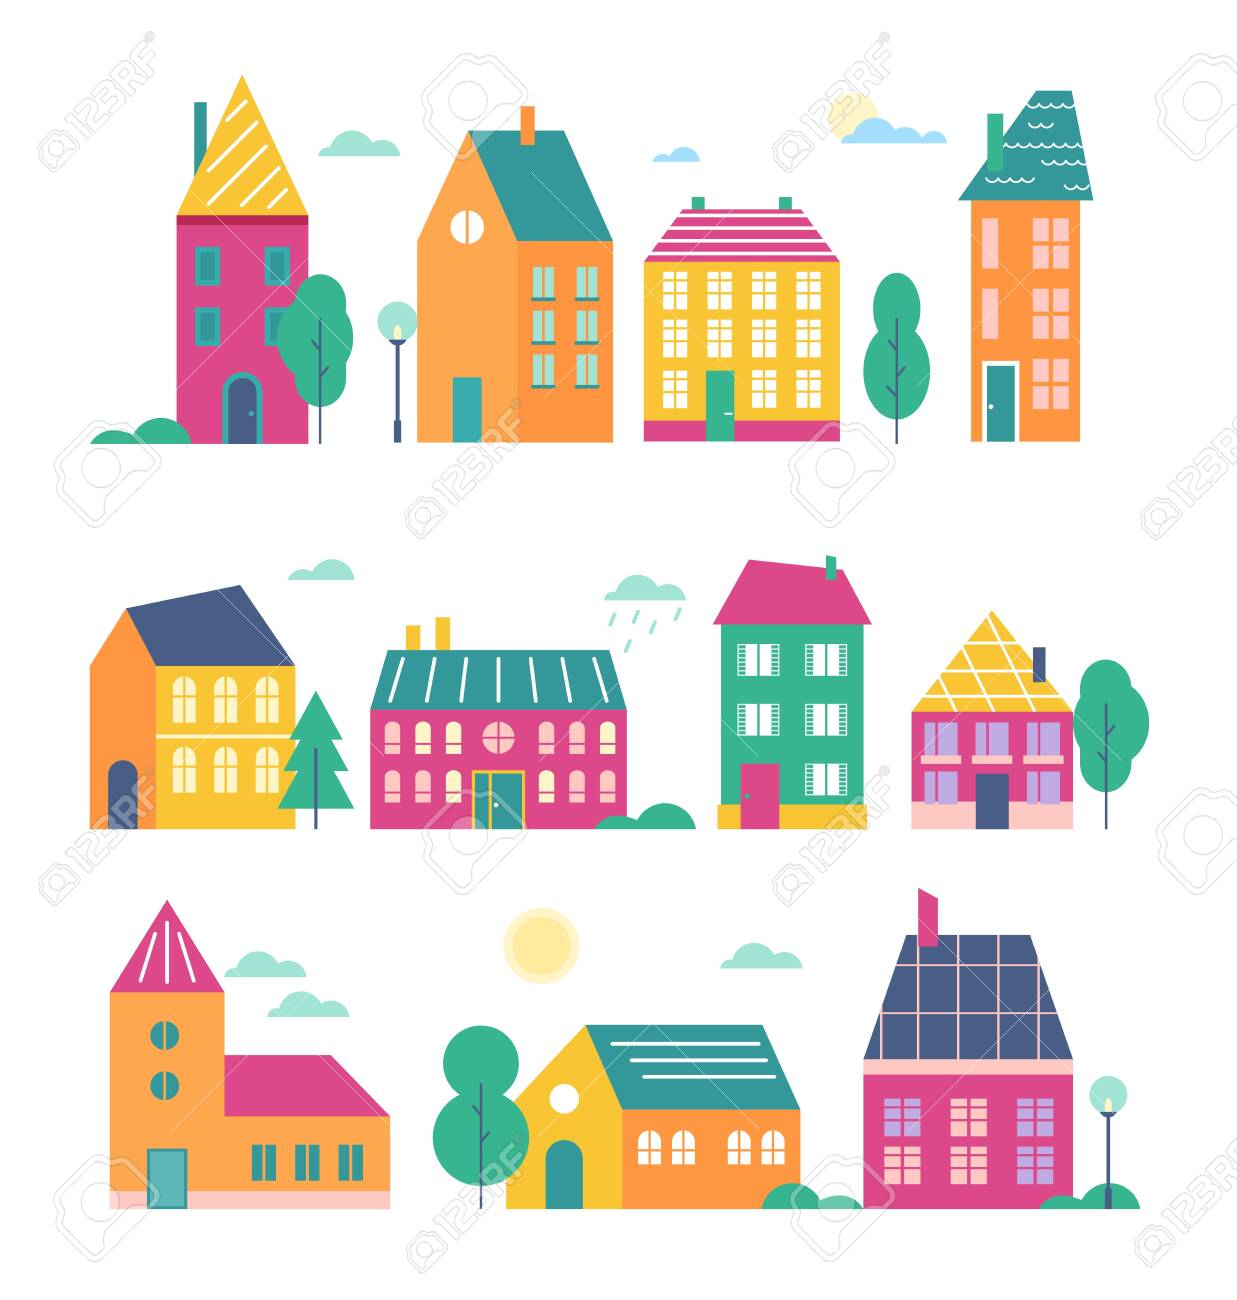 Town houses vector illustration set. Cartoon flat cute colorful urban variety buildings collection of modern and retro townhouse or cottage household facade with door, window, roof isolated on white - 151948070